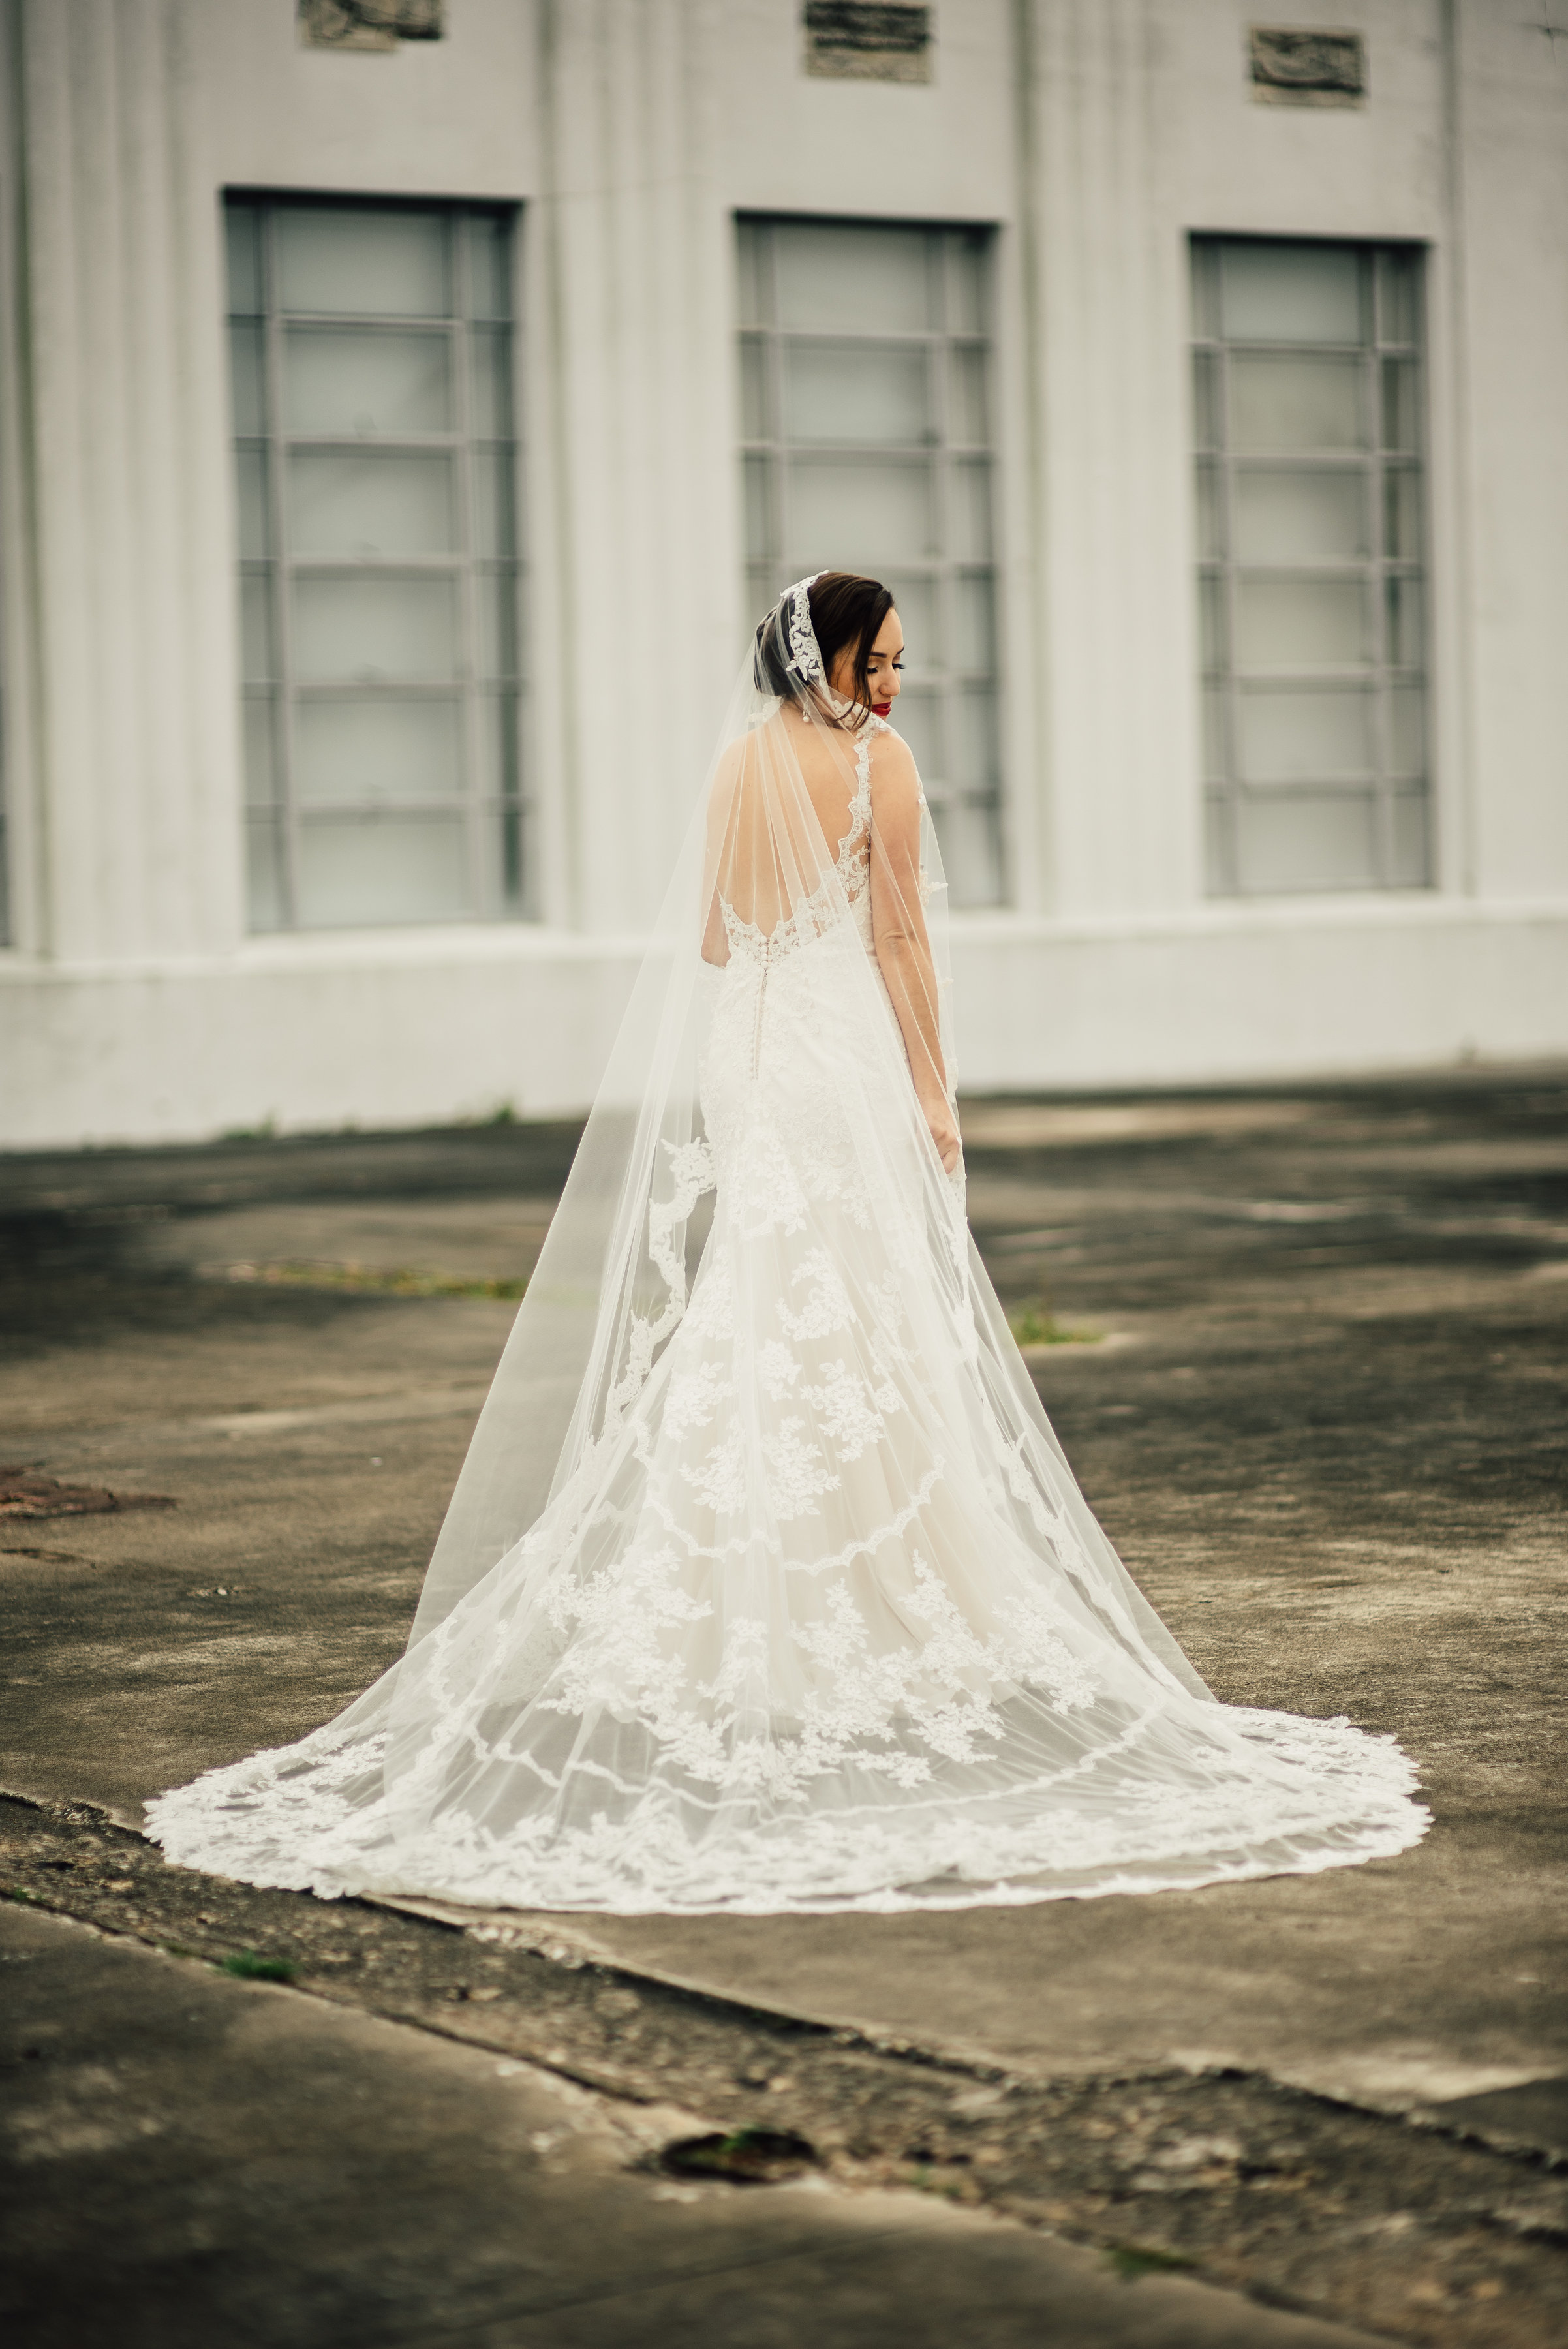 Low Back Wedding Dress With Veil : Lacey with a low back bridal houston tx